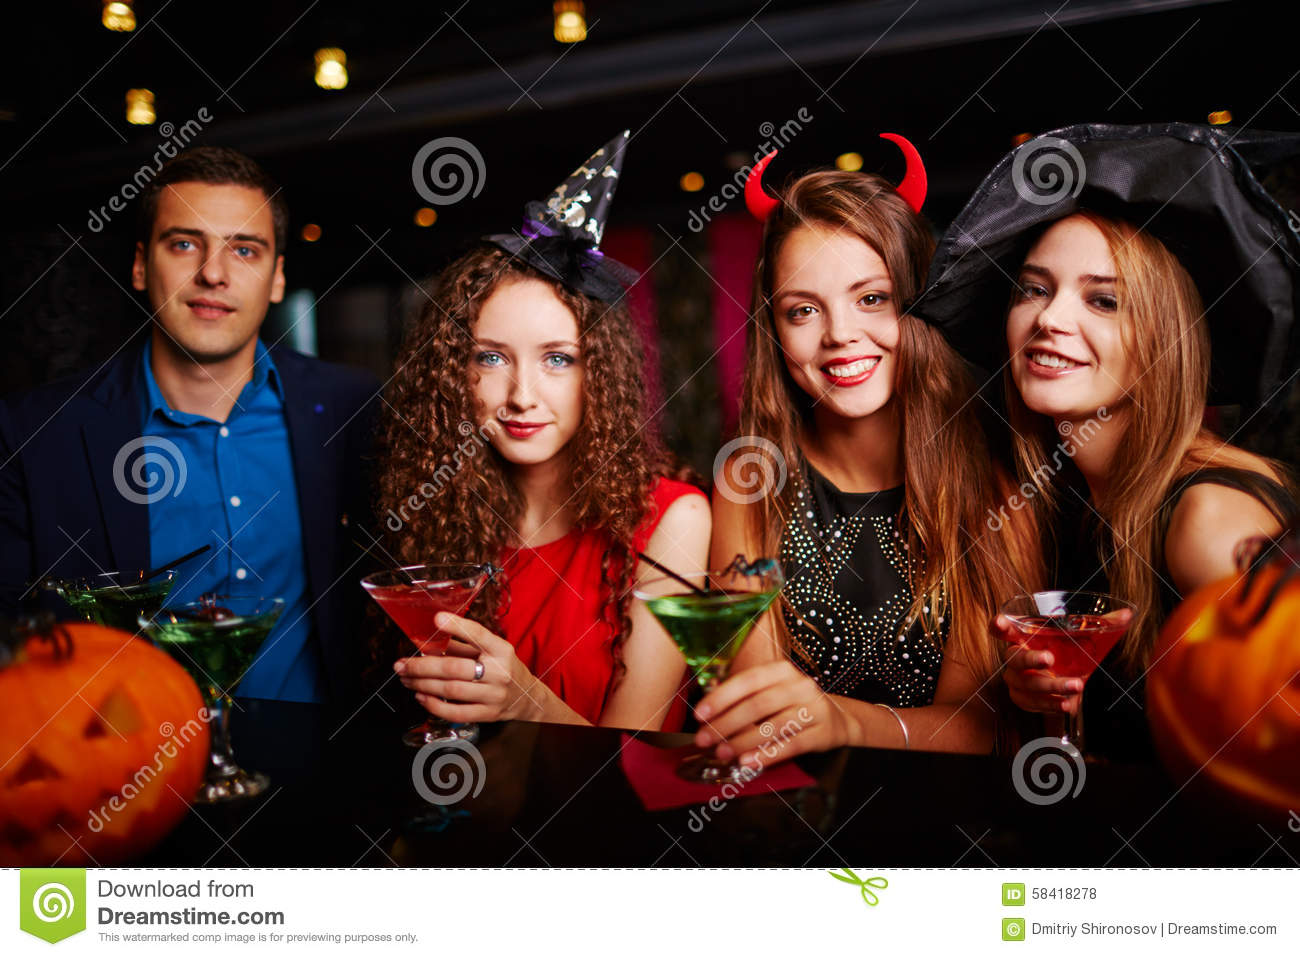 Halloween Party At Bar Stock Photo - Image: 58418278